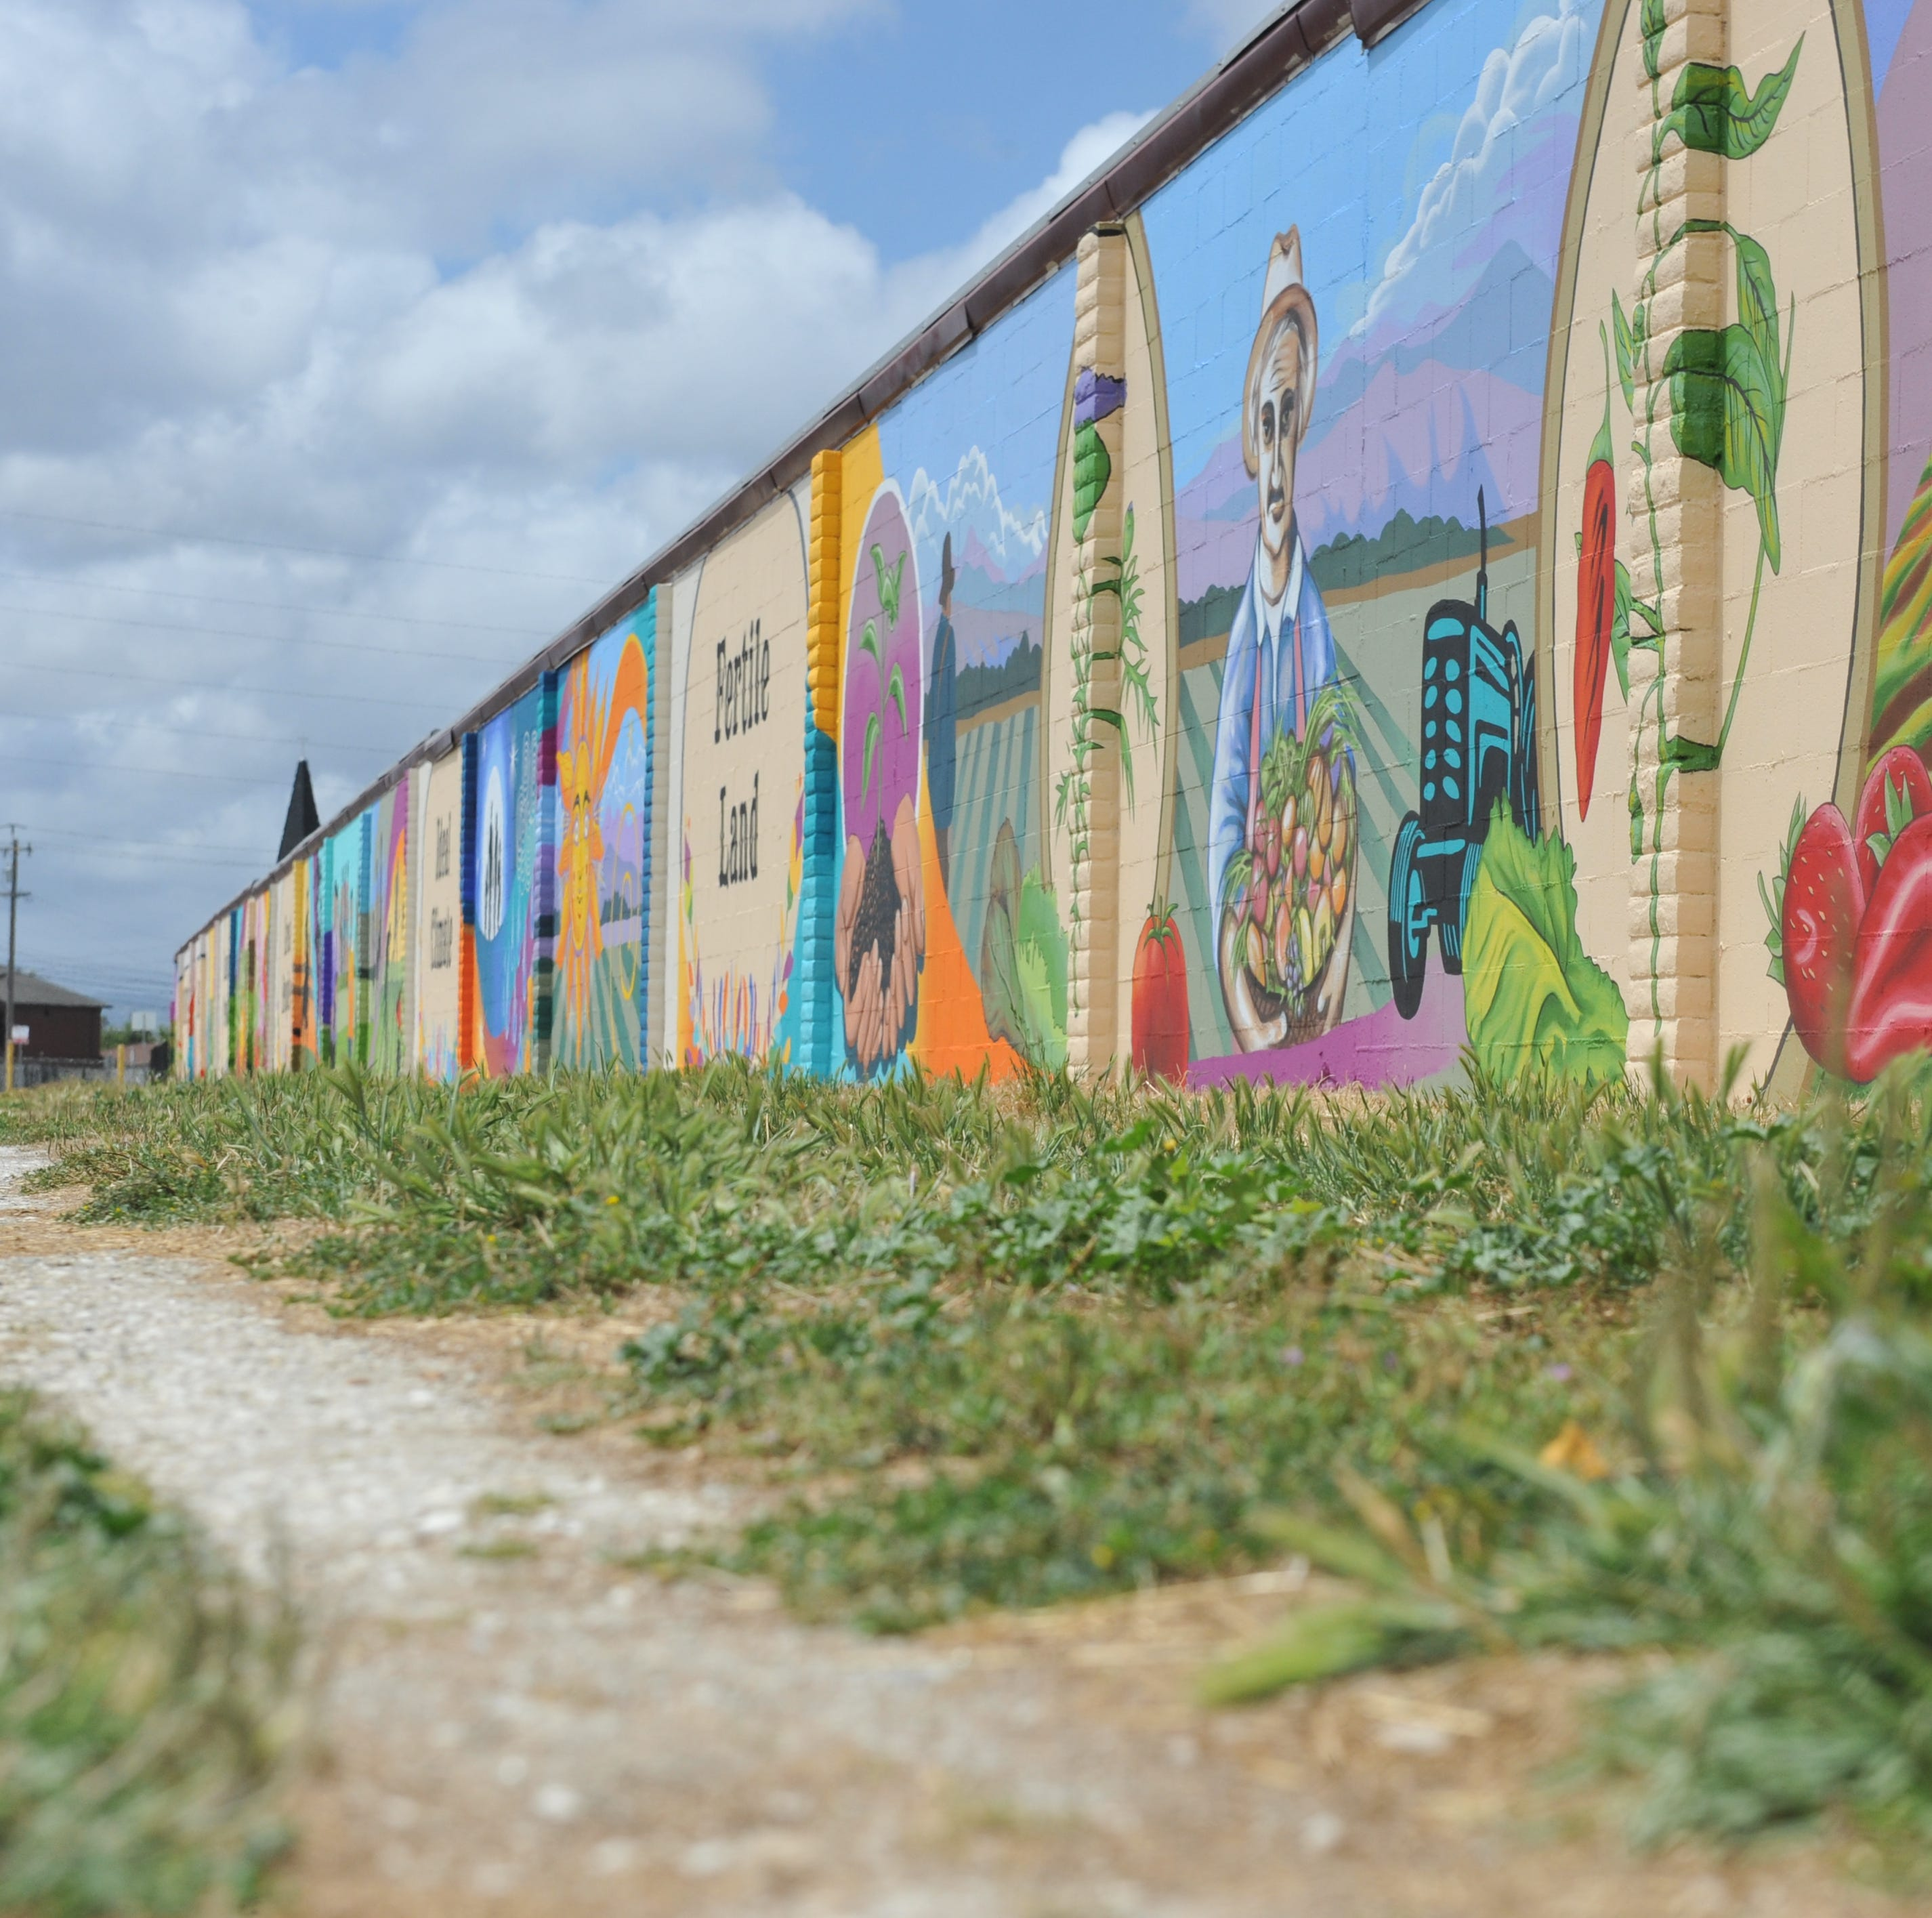 New Salinas mural spans close to 600 feet, paying homage to local history, agriculture